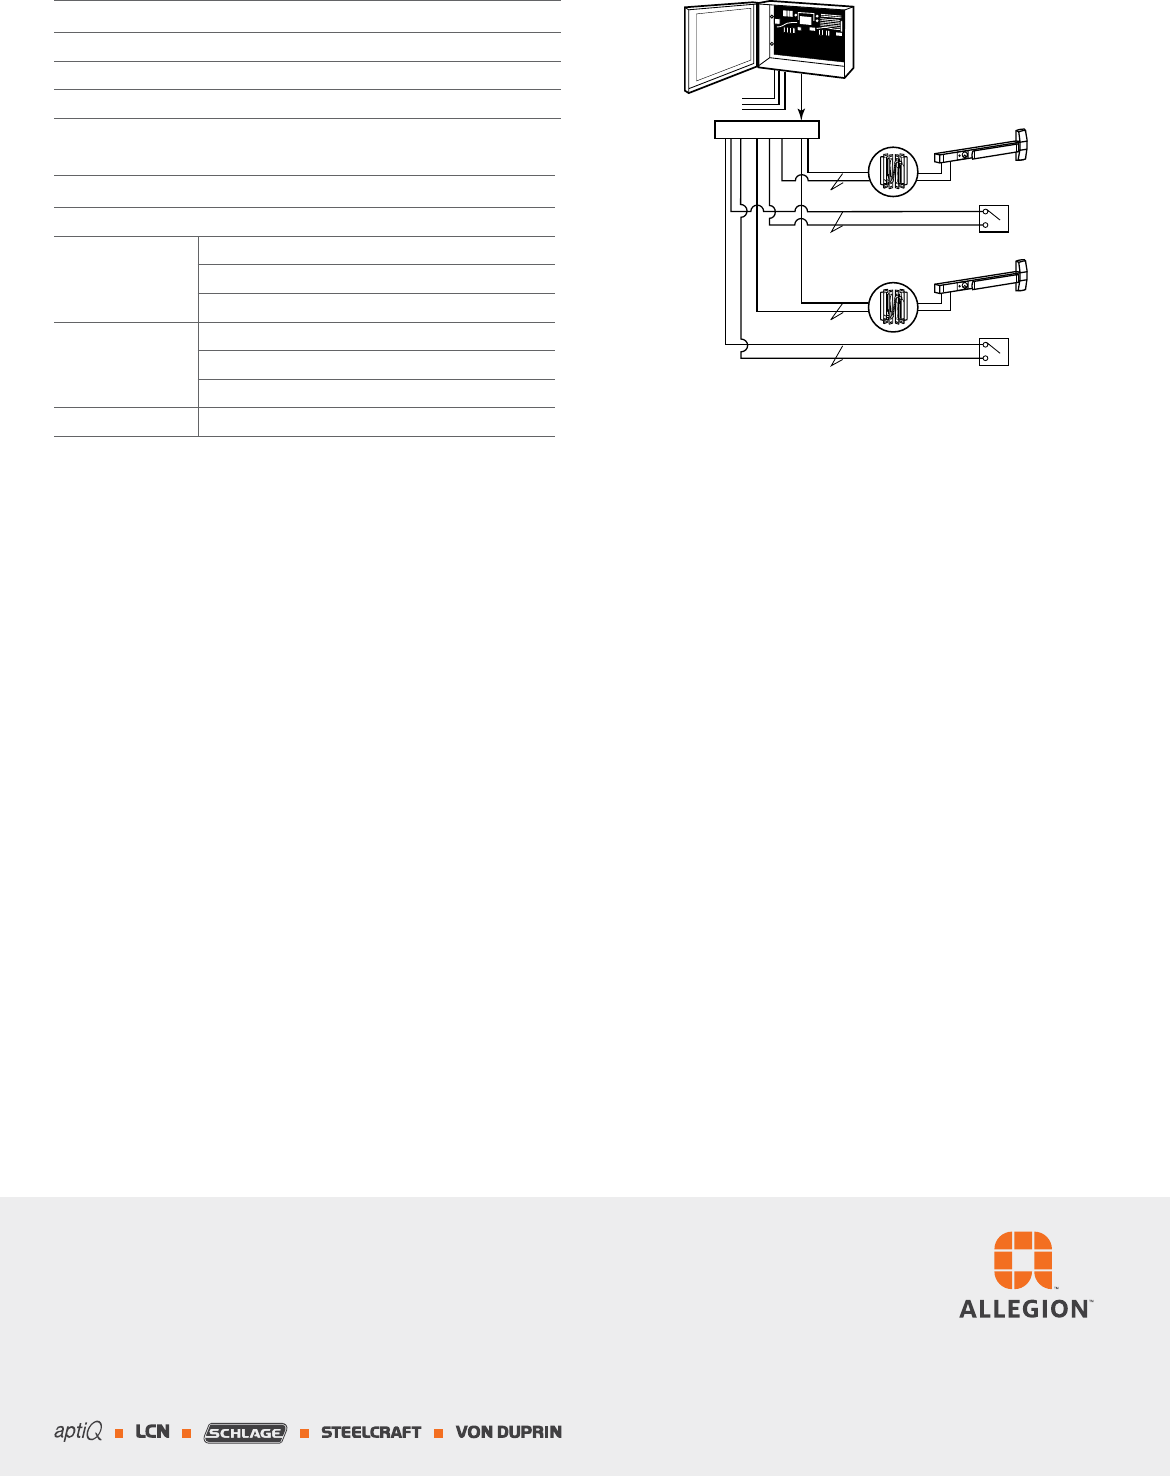 Von Duprin El For Exit Devices Data Sheet 110105 Ps914 Wiring Diagram Allegion Nyse Alle Creates Peace Of Mind By Pioneering Safety And Security As A